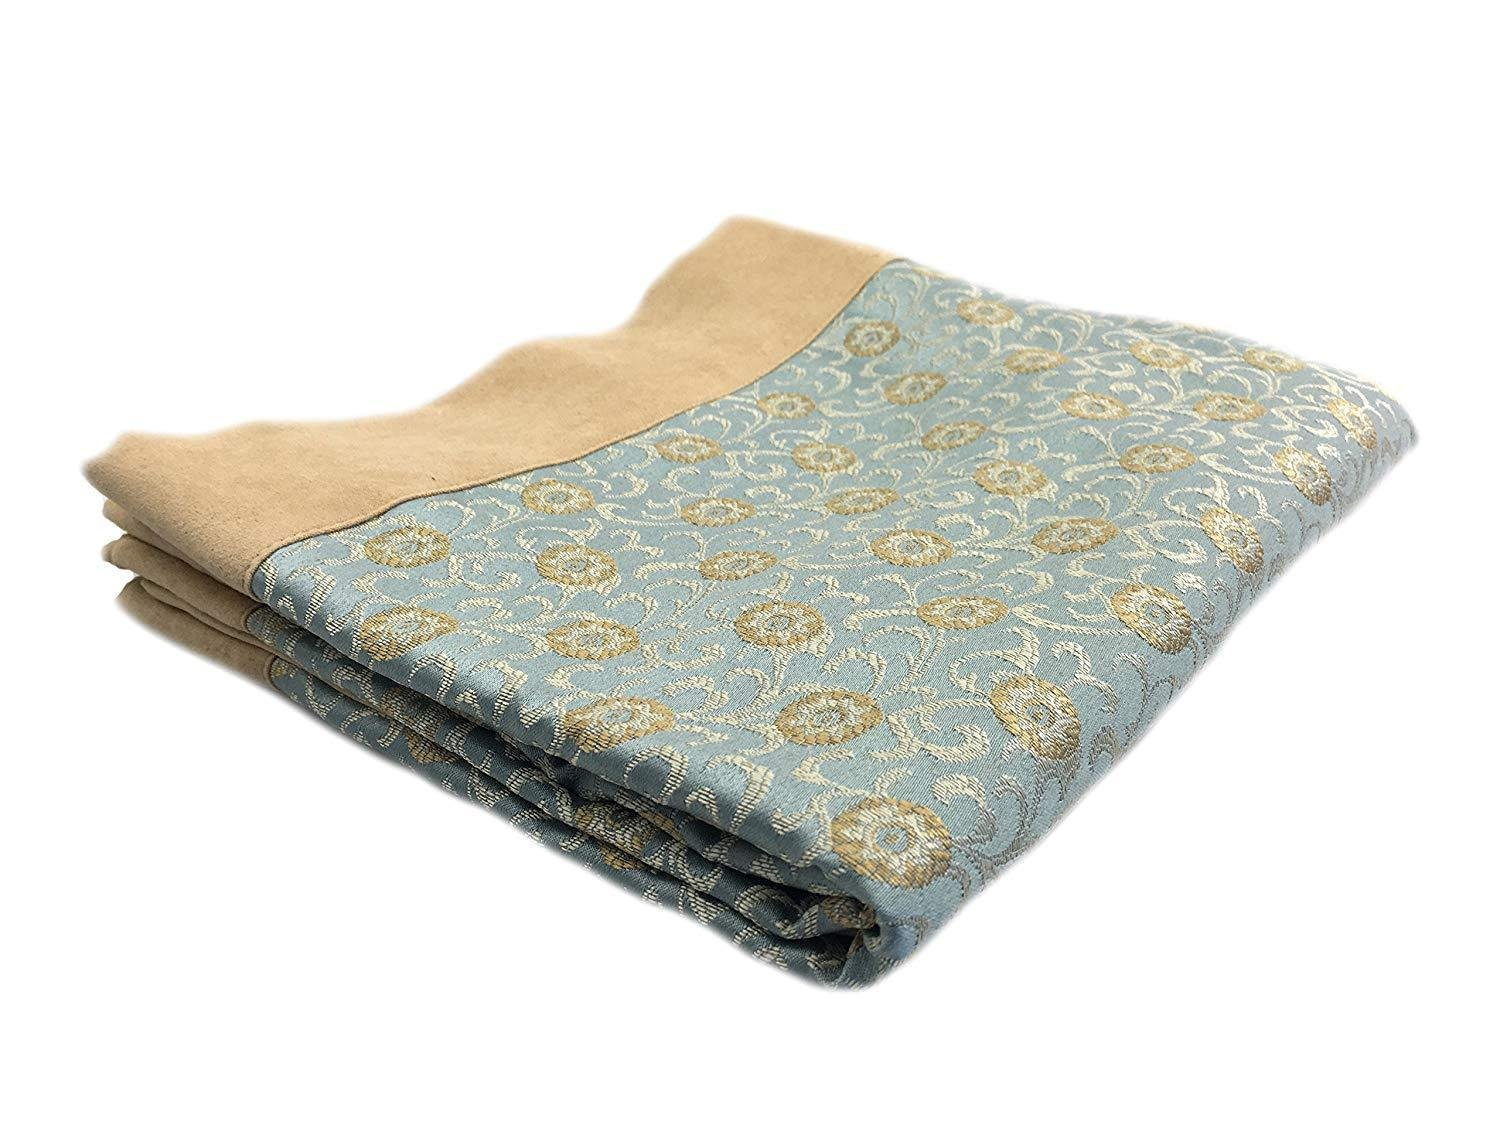 Koni Bed Throw, Blue, Tan and Gold, Suede Edge, Blue King 100x40 in.